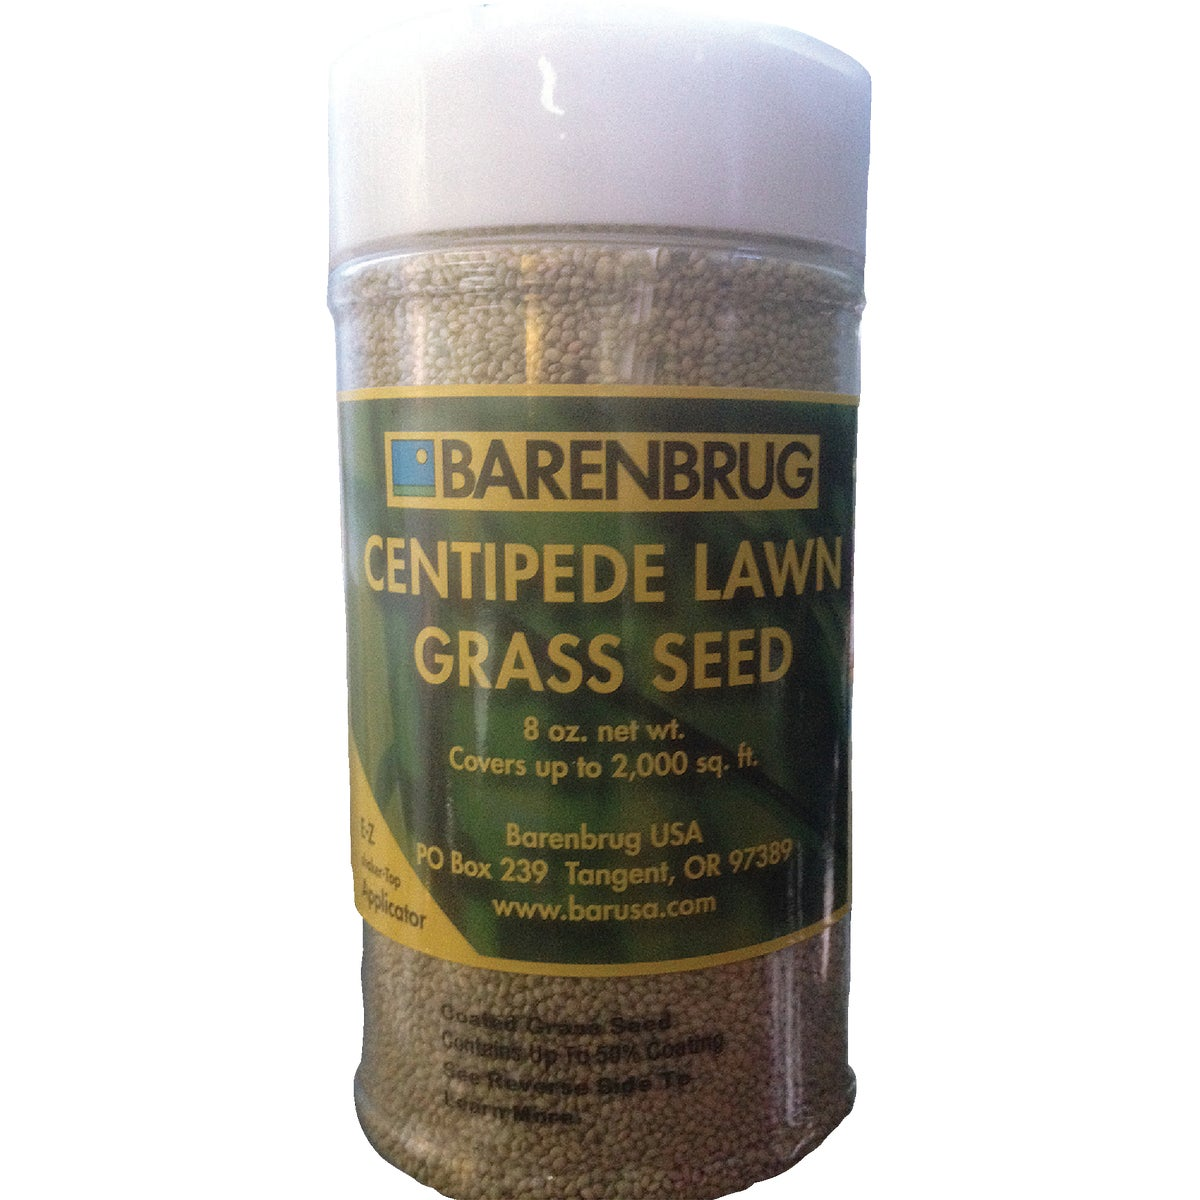 .5LB CENTIPED GRASS SEED - 10004 by Barenbrug U S A